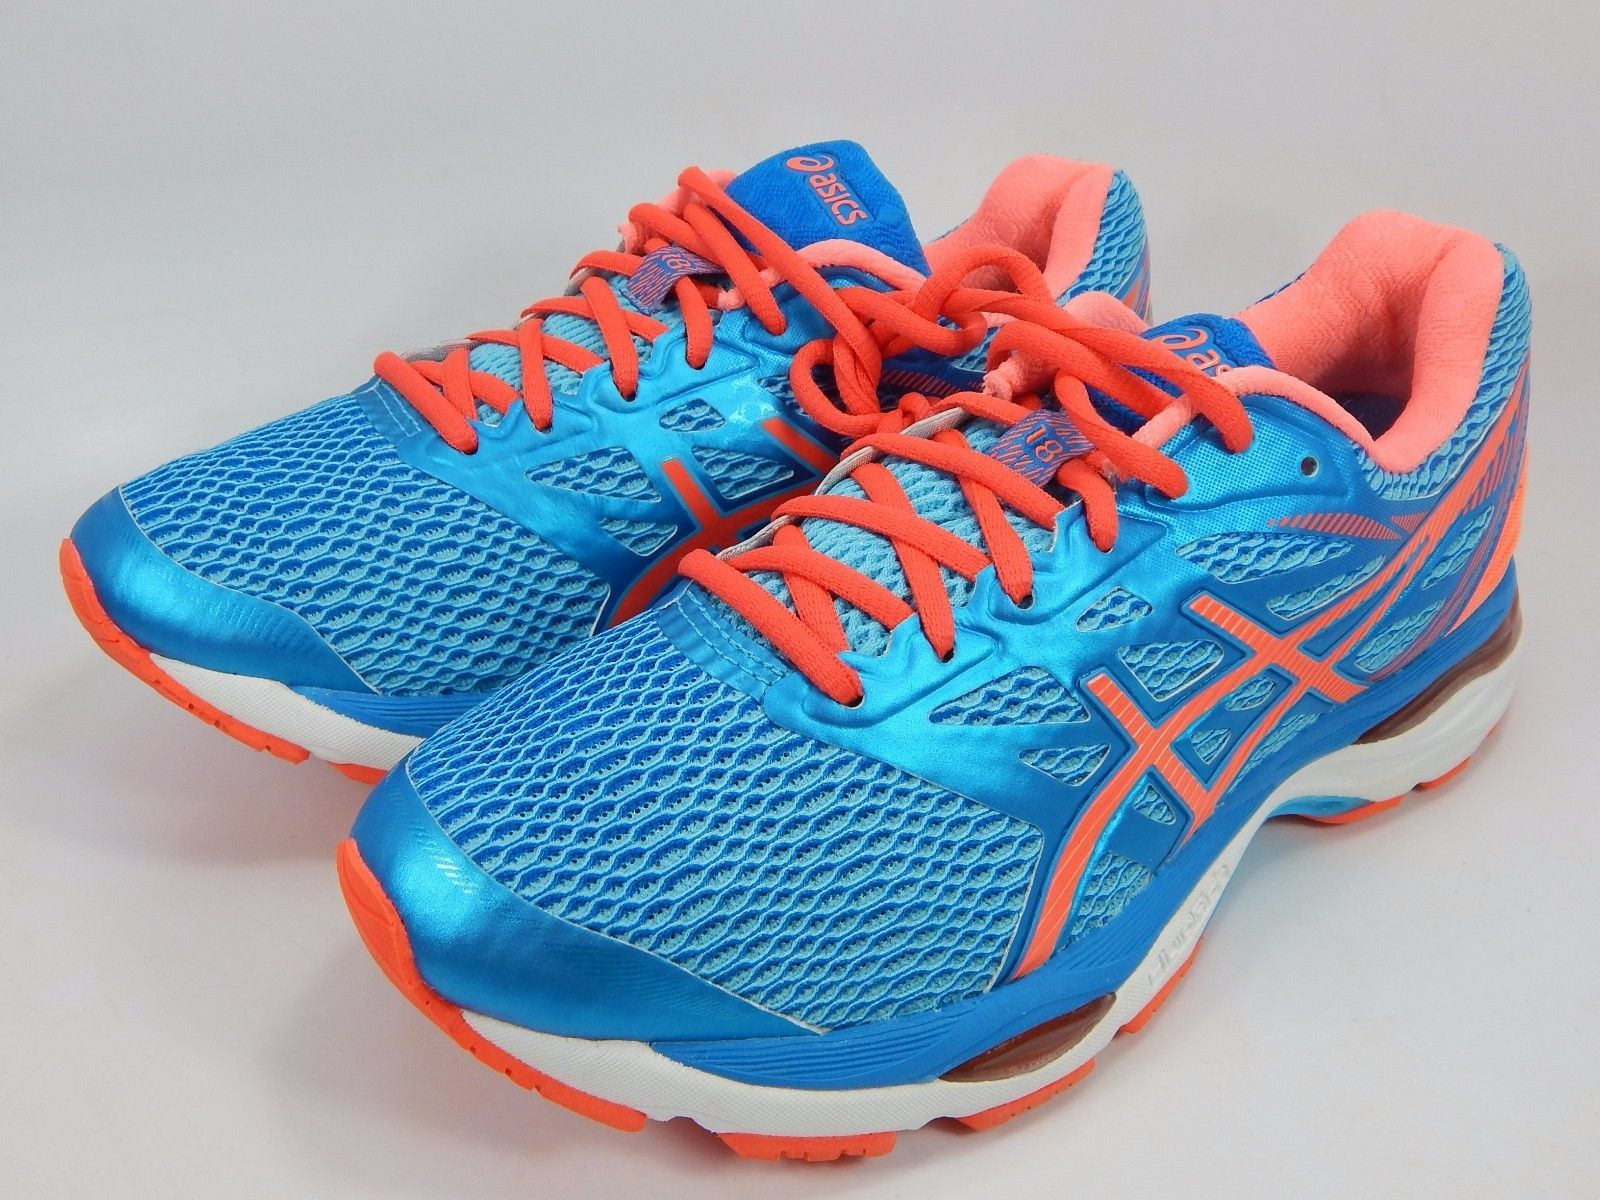 Asics Gel Cumulus 18 Women's Running Shoes Size US 7.5 D WIDE EU 39 Blue T6C9N